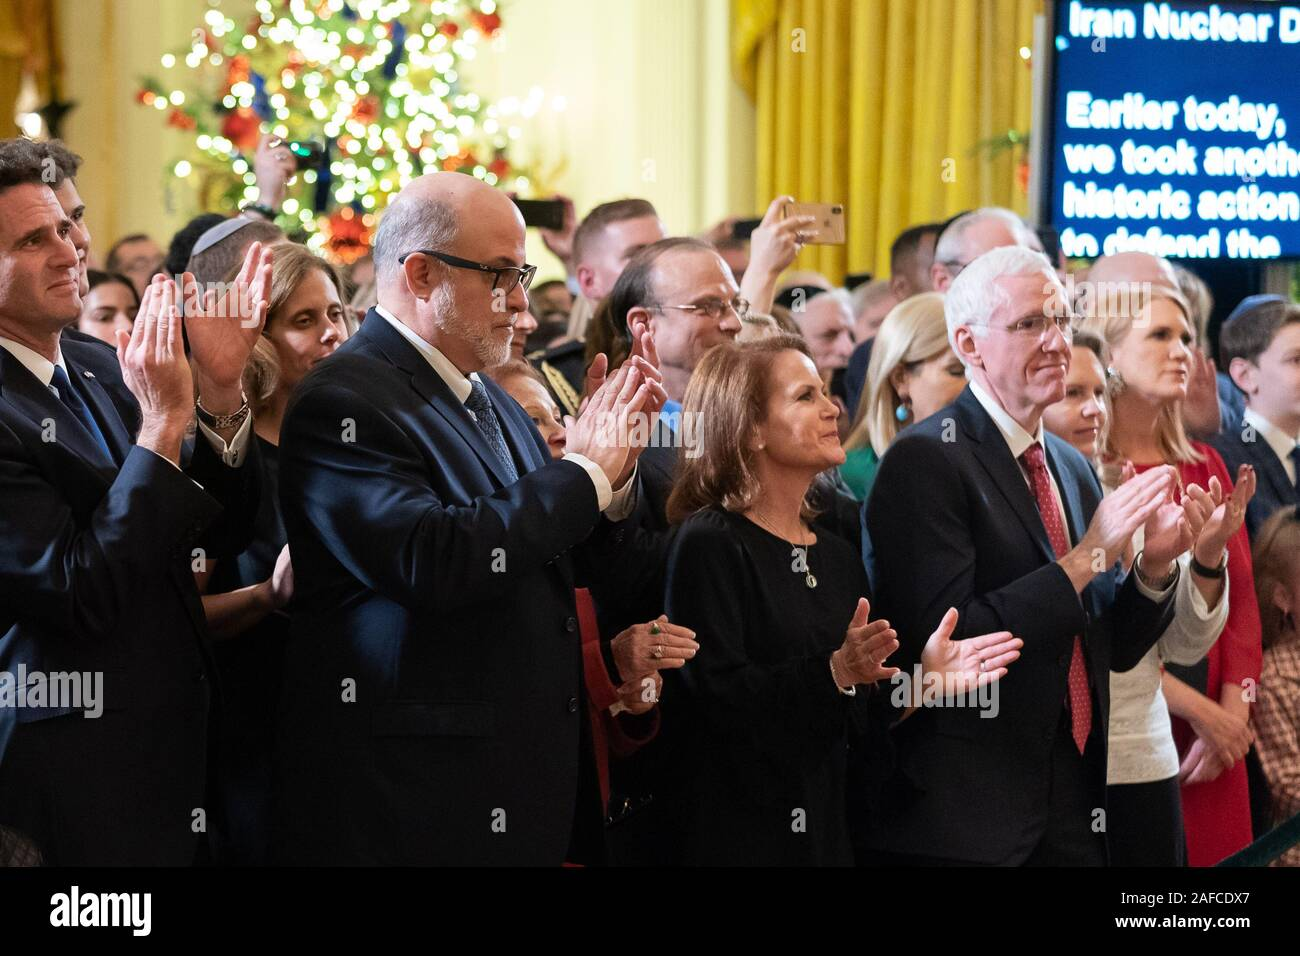 Washington, United States Of America. 11th Dec, 2019. Israeli Ambassador to the United States Ron Dermer and conservative commentator Mark Levin join guests as they applaud President Donald J. Trump during a Hanukkah Reception Wednesday, Dec. 11, 2019, in the East Room of the White House People: Israeli Ambassador to the United States Ron Dermer and conservative commentator Mark Levin Credit: Storms Media Group/Alamy Live News Stock Photo